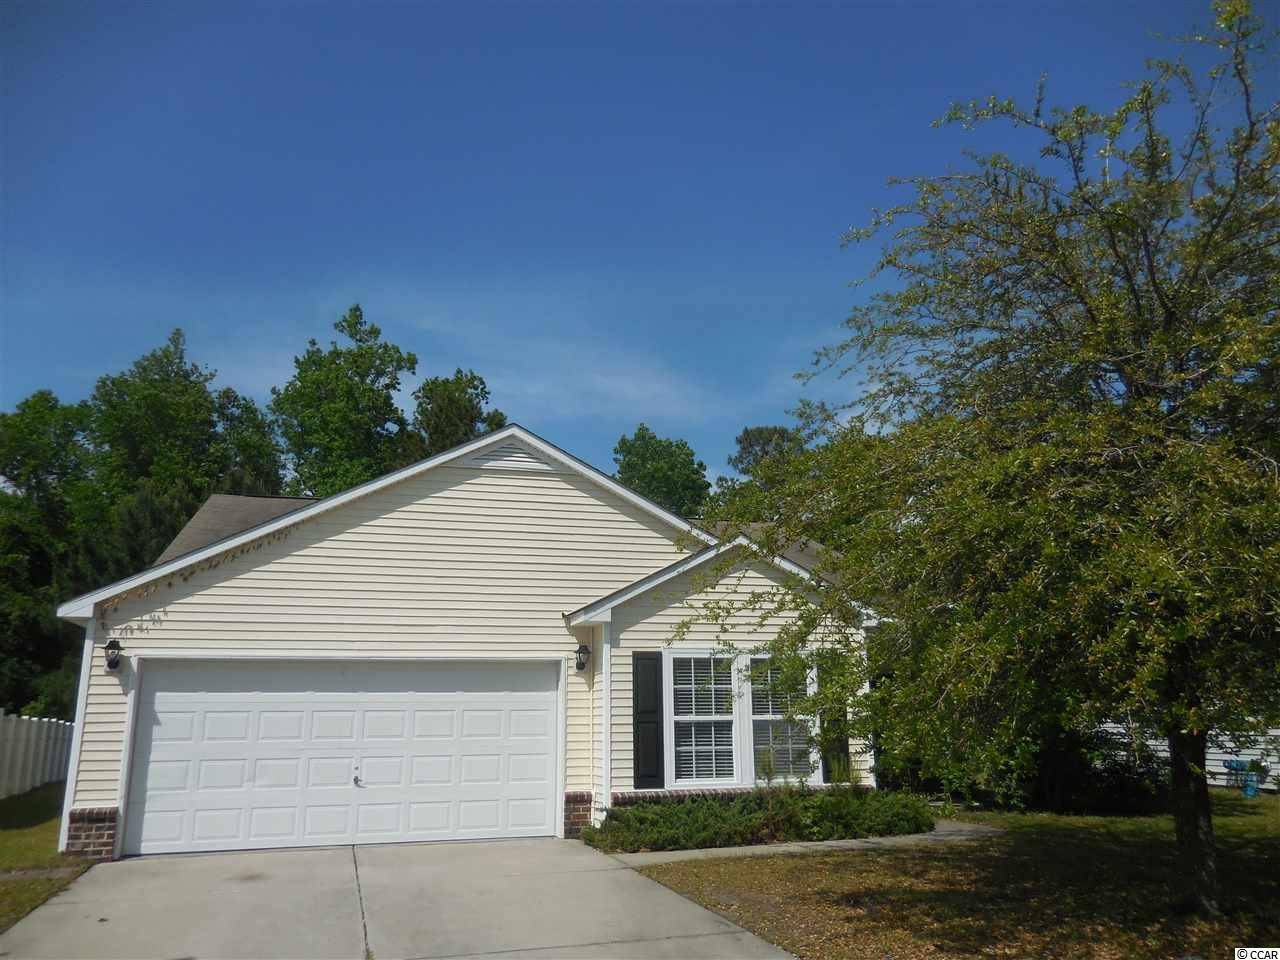 New Listing in Carolina Forest Bellegrove The Hemingway model. Large and with an extra den or fourth bedroom. Huge back yard that backs up to trees. Front porch,back patio New dishwasher and microwave. New carpet,freshly painted. Buyer responsible for verification of square footage.